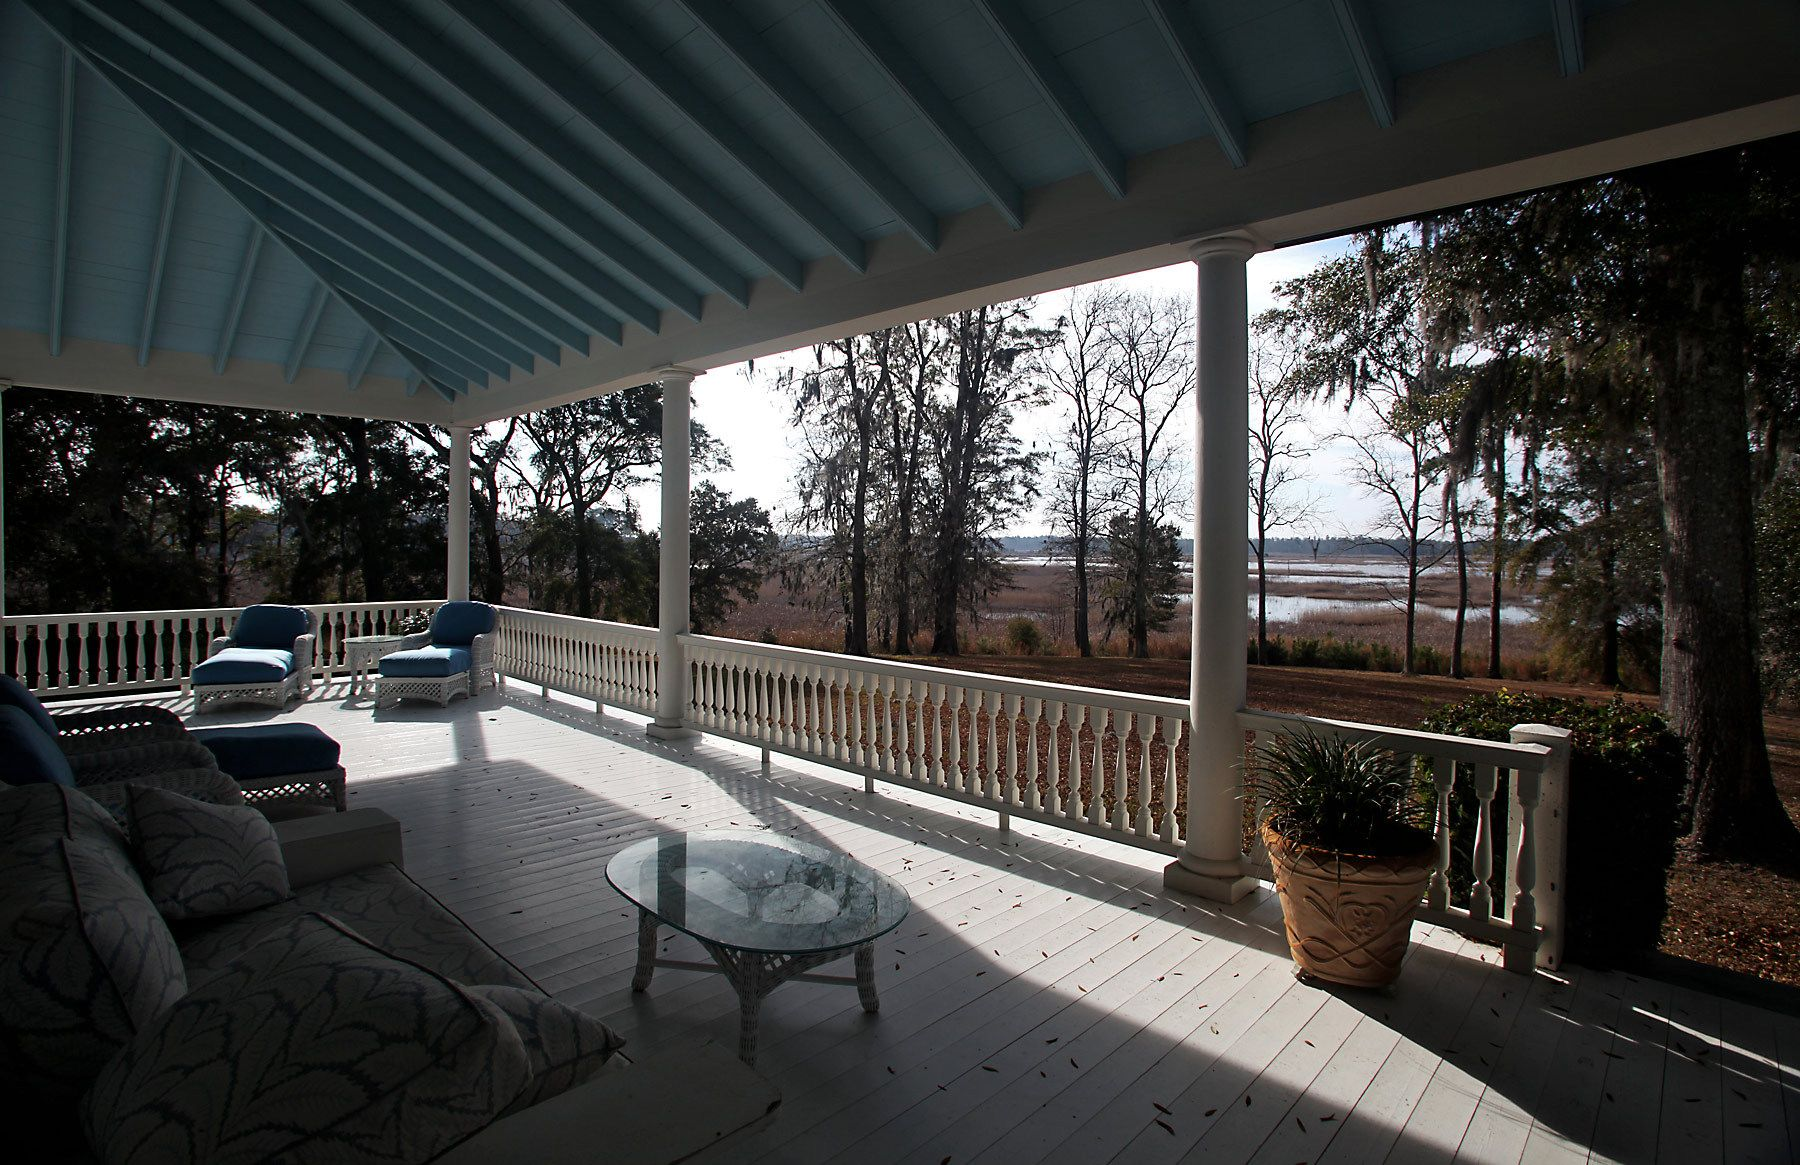 The view from a porch overlooks the former rice fields at the main house at Silver Hill Plantation February 17, 2012, in Georgetown, S.C. The house that was restored in 1999 by the current owners of the property. Silver Hill is listed for sale with Friendfield Plantation that includes 3264 acres of land along the marsh outside in Georgetown, S.C. In the South Carolina Lowcountry, more than a half-dozen antebellum plantations, which don't change hands often, are for sale.REUTERS/Randall Hill